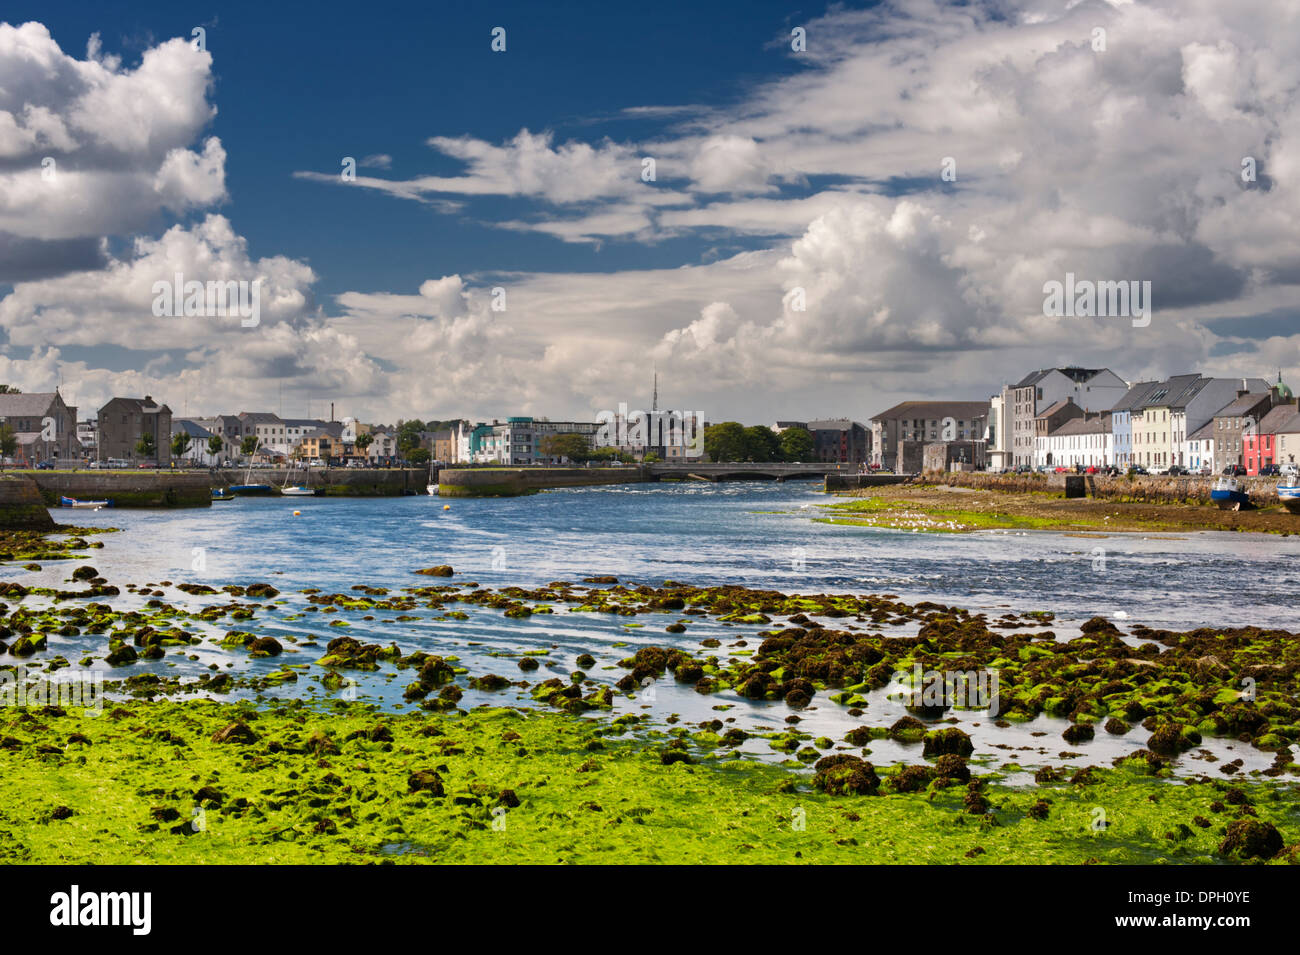 The Corrib River flowing through the Claddagh and Spanish Arch areas of Galway City, Ireland - Stock Image